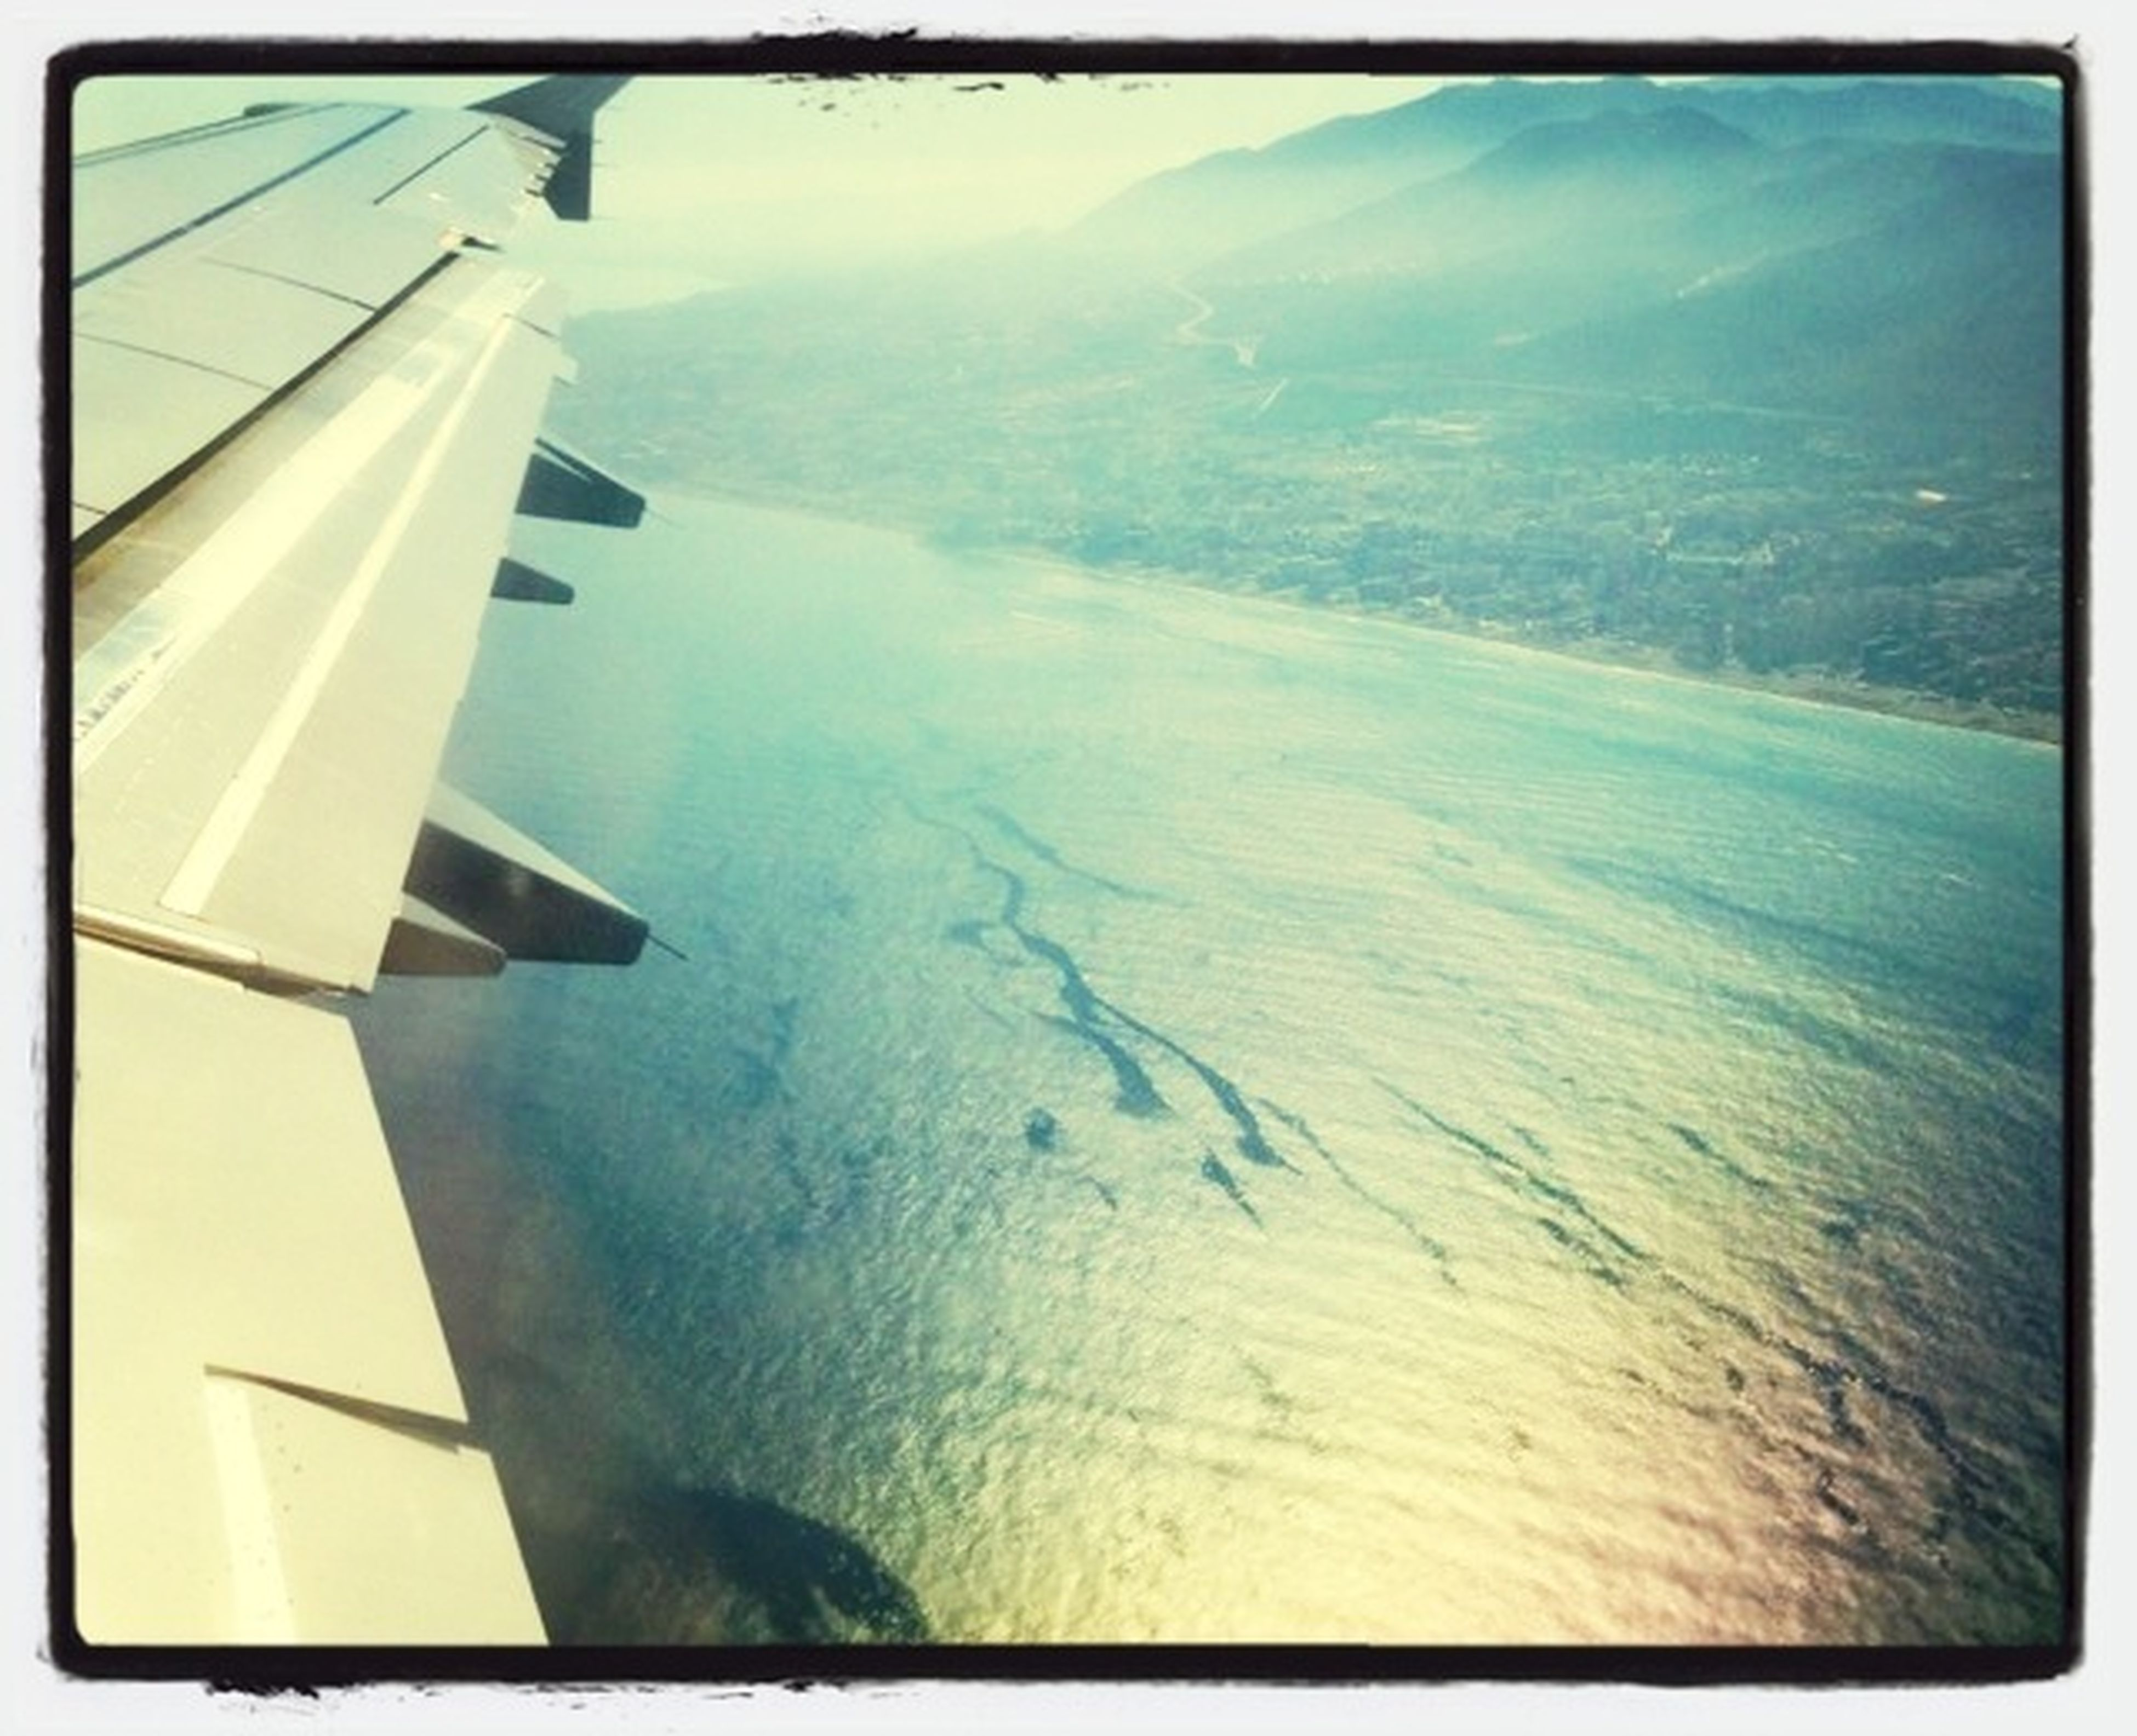 transportation, airplane, aerial view, mode of transport, aircraft wing, landscape, air vehicle, flying, cropped, scenics, part of, mountain, nature, beauty in nature, transfer print, tranquil scene, tranquility, travel, journey, on the move